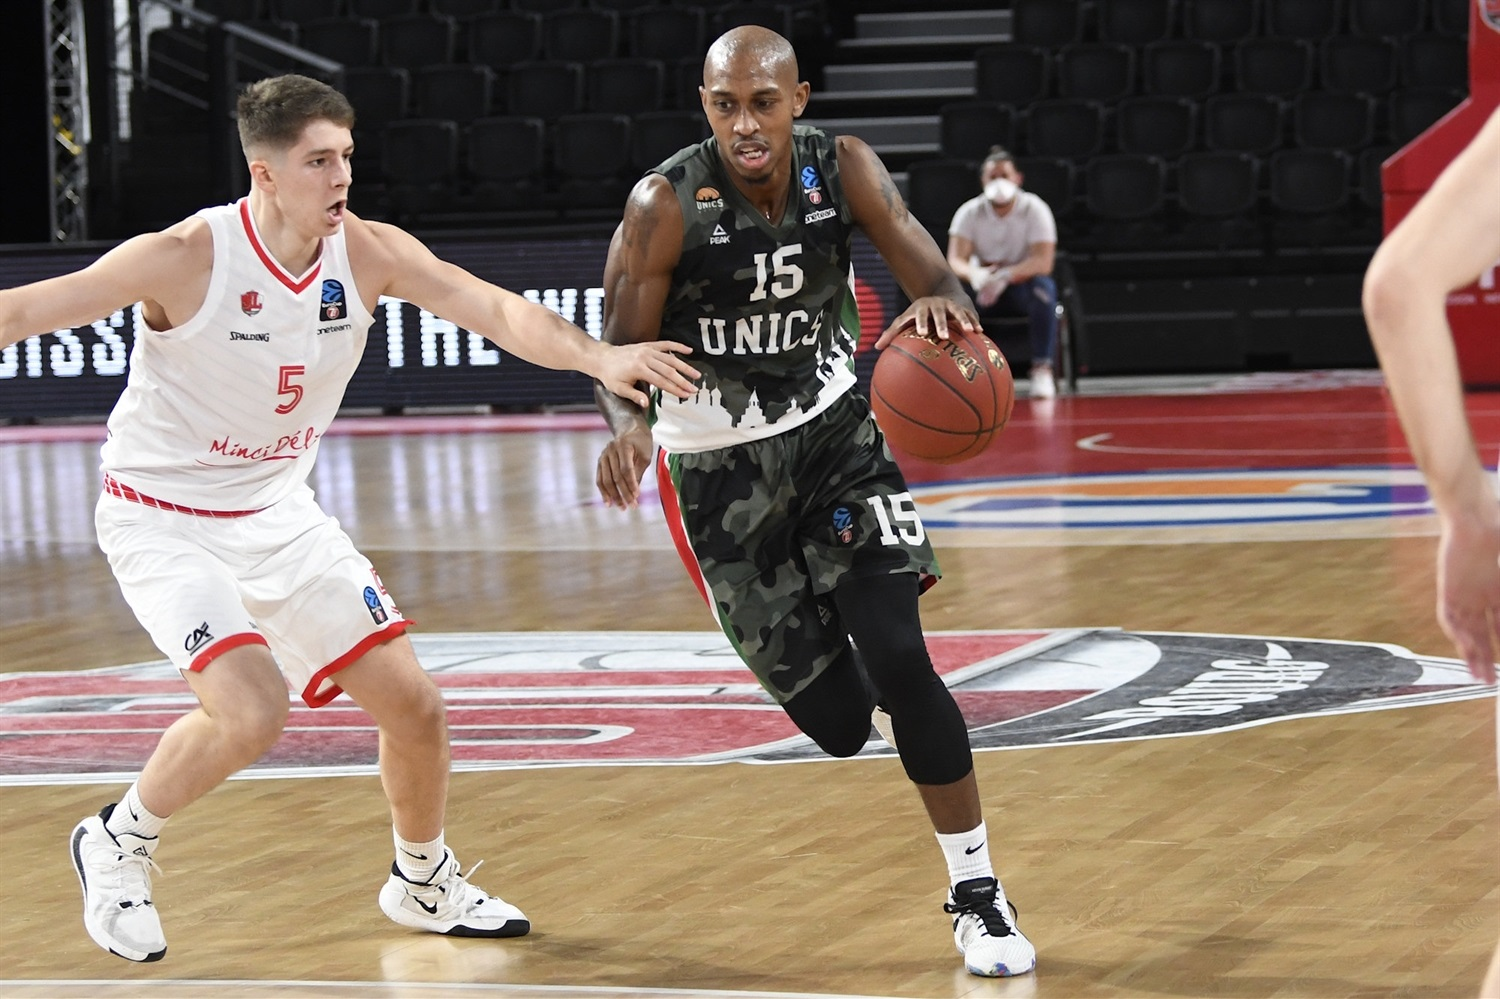 Jamar Smith - UNICS Kazan (photo Bourg - Jacques Cormareche) - EC20